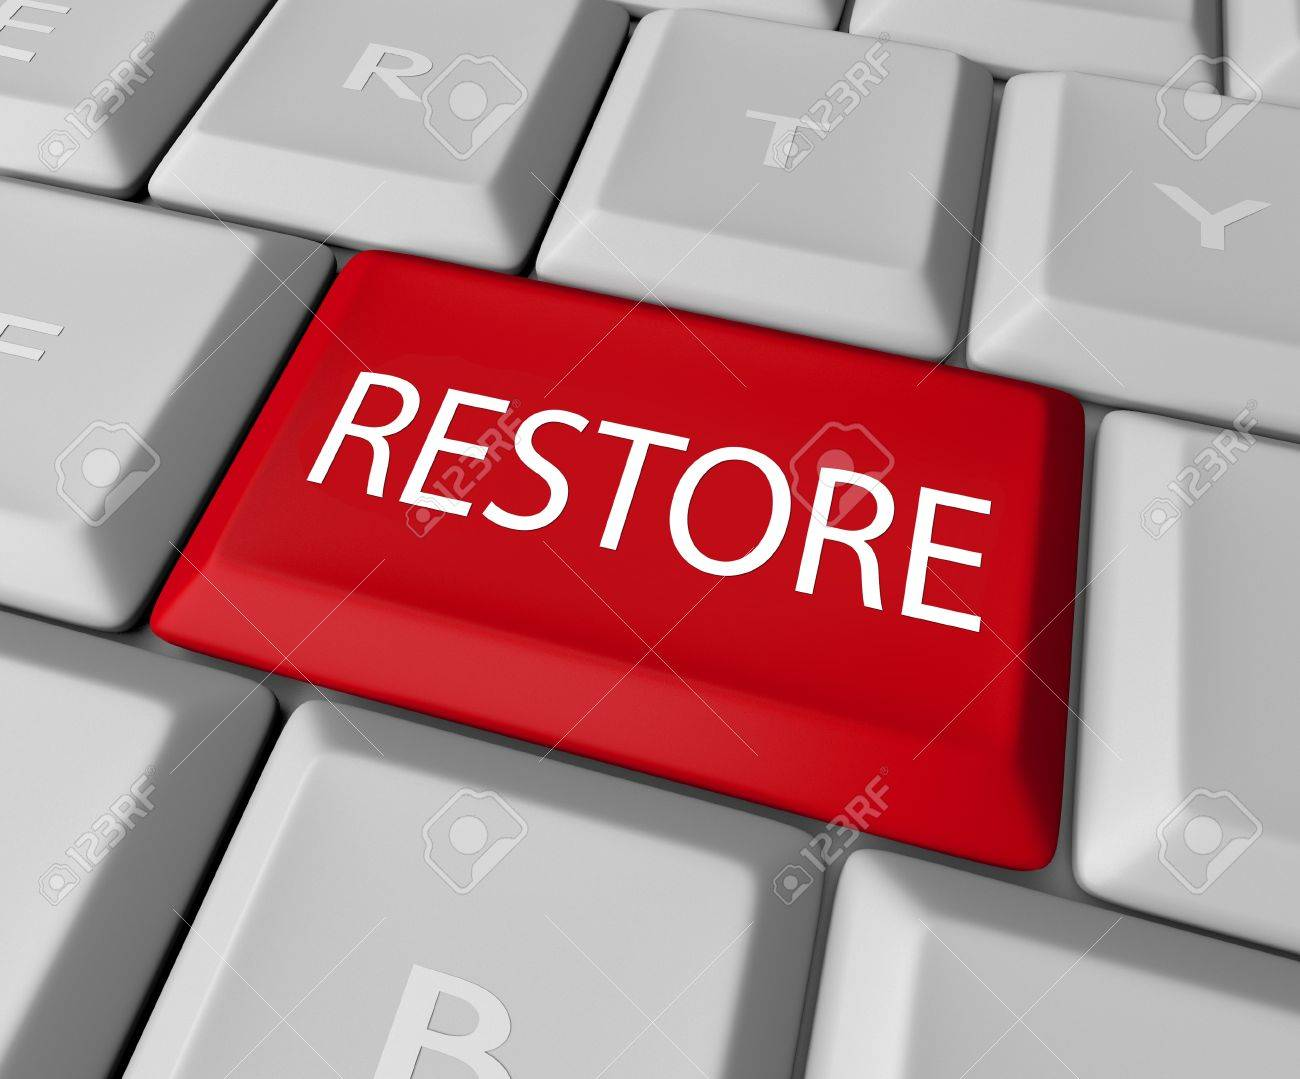 A keyboard with a red key for the word Restore, representing the need to return to past values or recover files lost on a computer through a back-up copy Stock Photo - 10978059